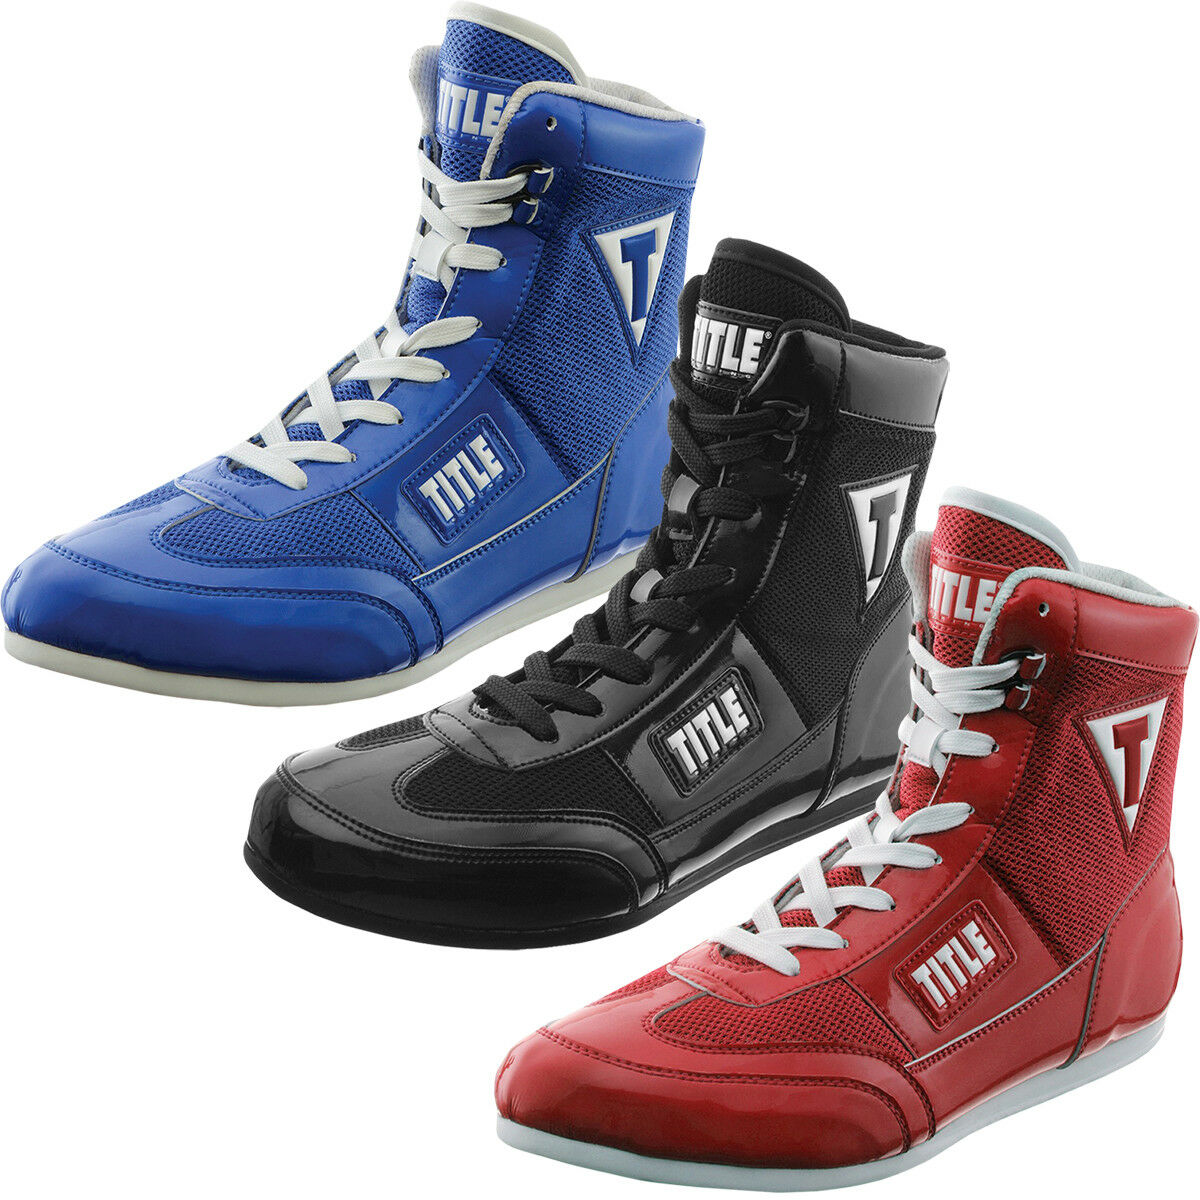 Title Boxing Hyper Speed Elite Lightweight  Mid-Length Boxing shoes  enjoy 50% off